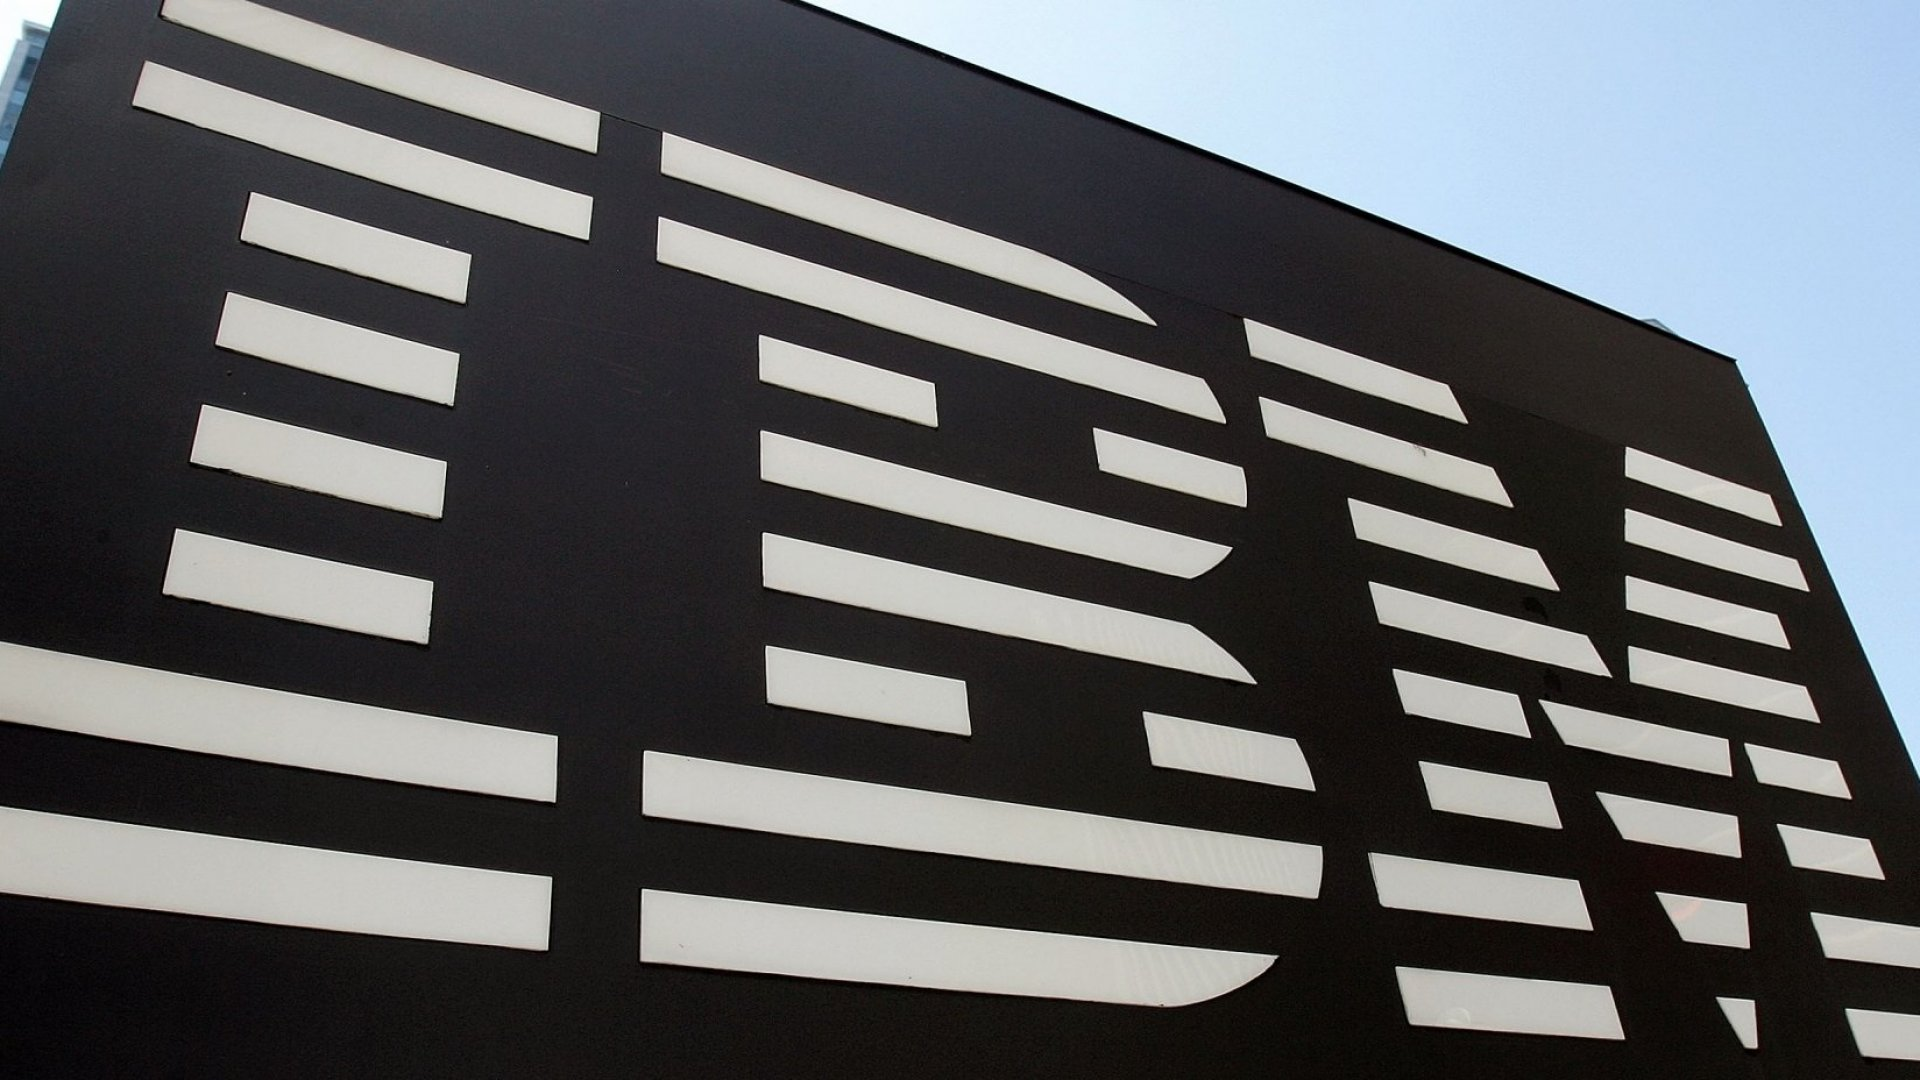 IBM's Marissa Mayer Moment? Staff Told to Work in 1 of 6 Main Offices or Else